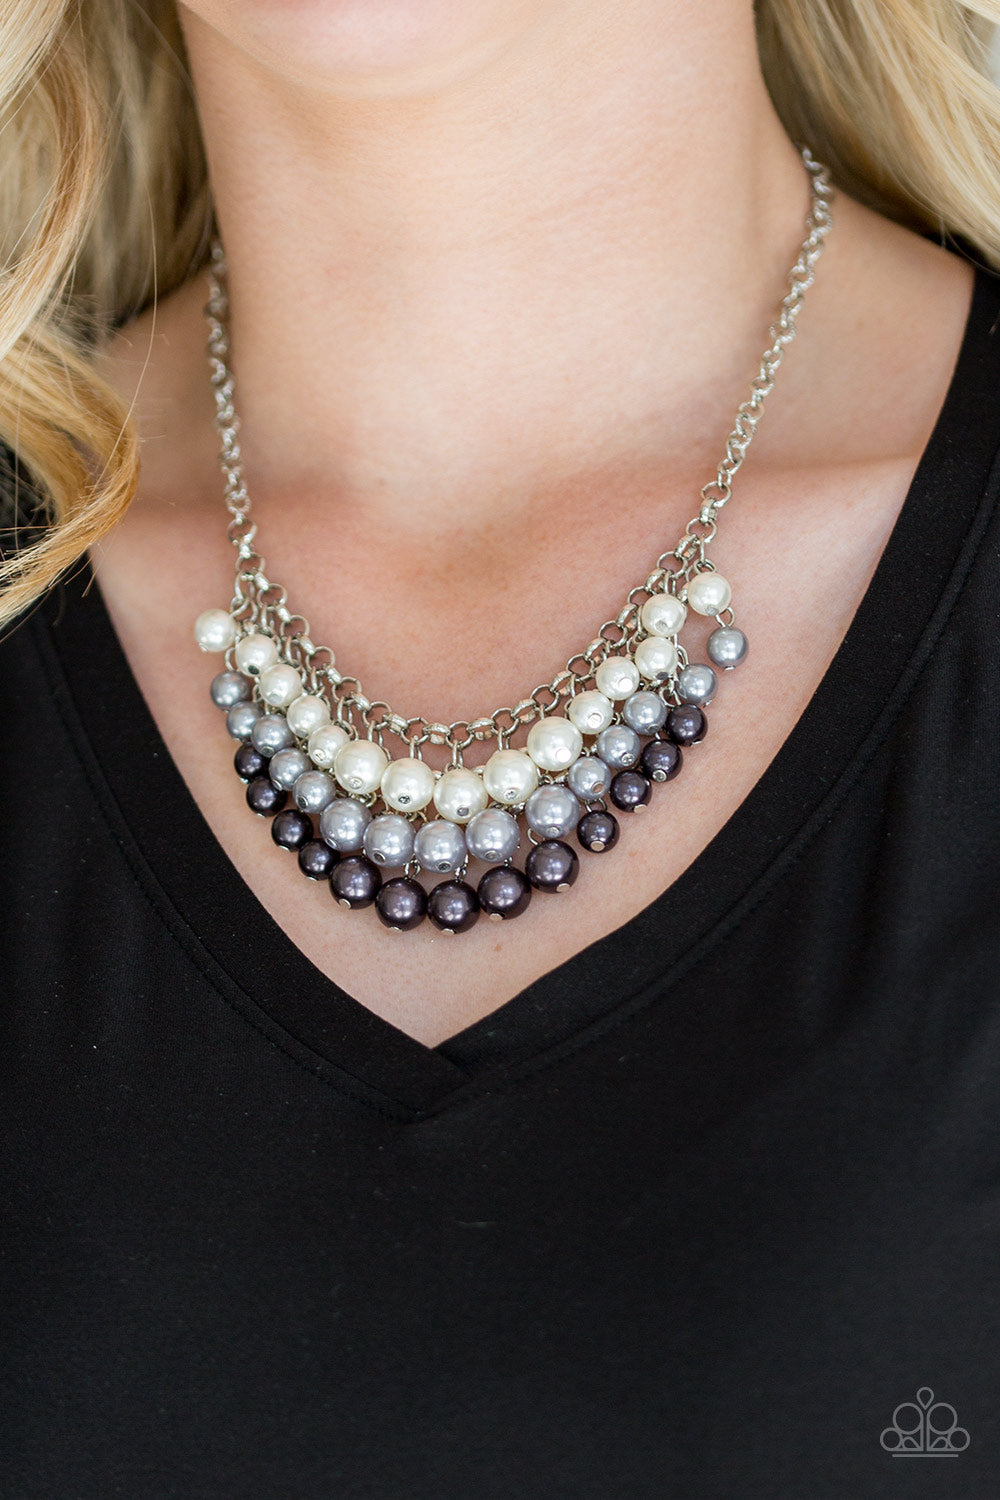 Paparazzi Accessories for the Heels - Silver Necklaces - Lady T Accessories